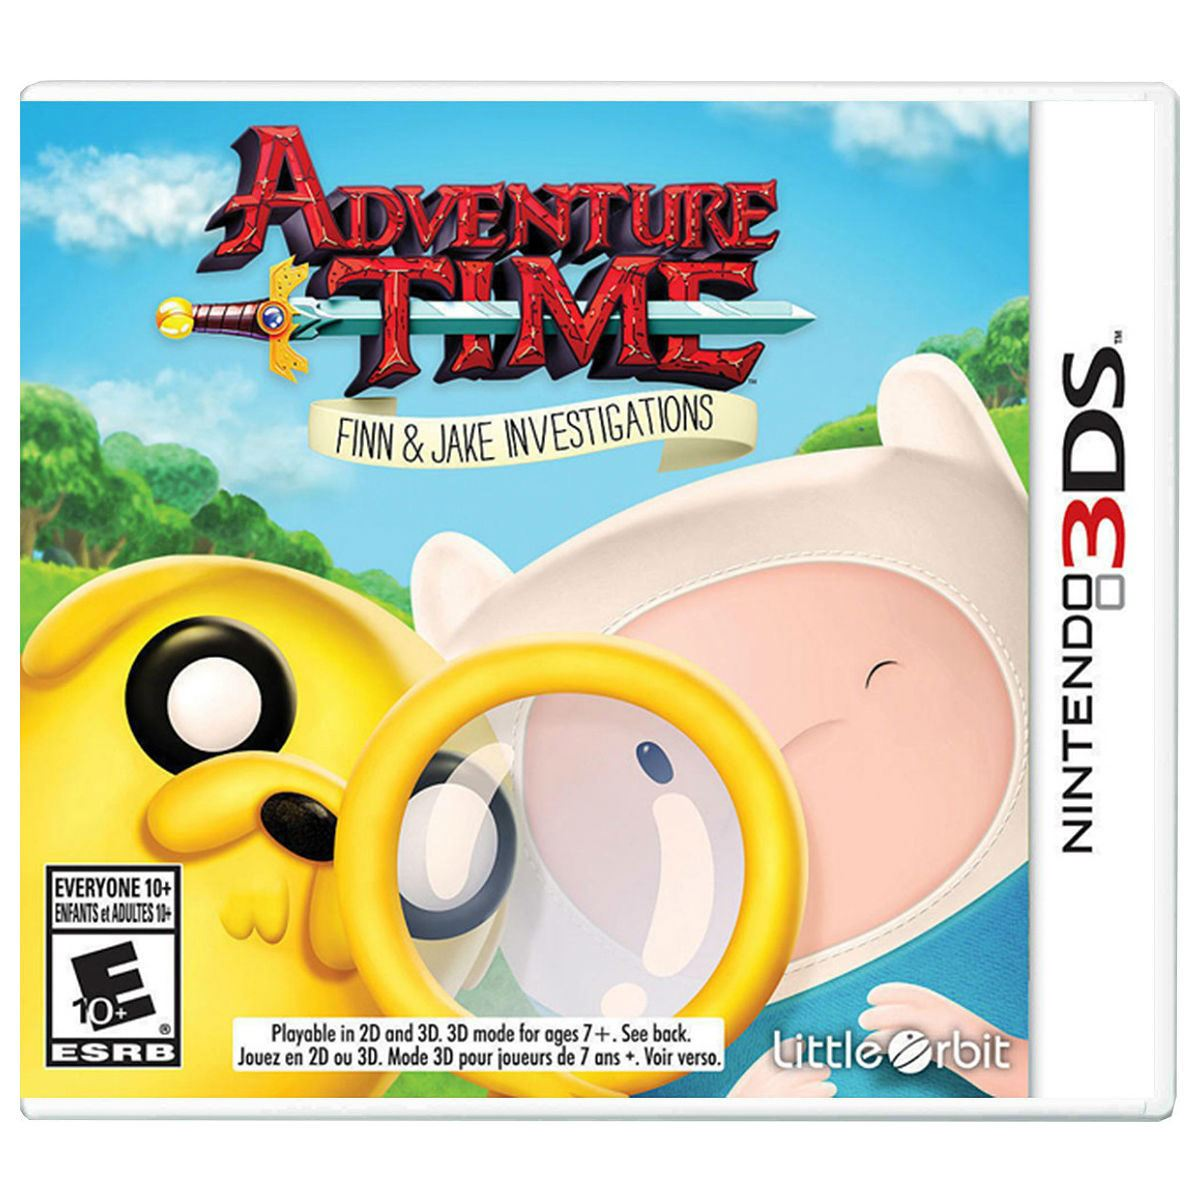 Adventure Time Finn And Jake Nintendo 3DS